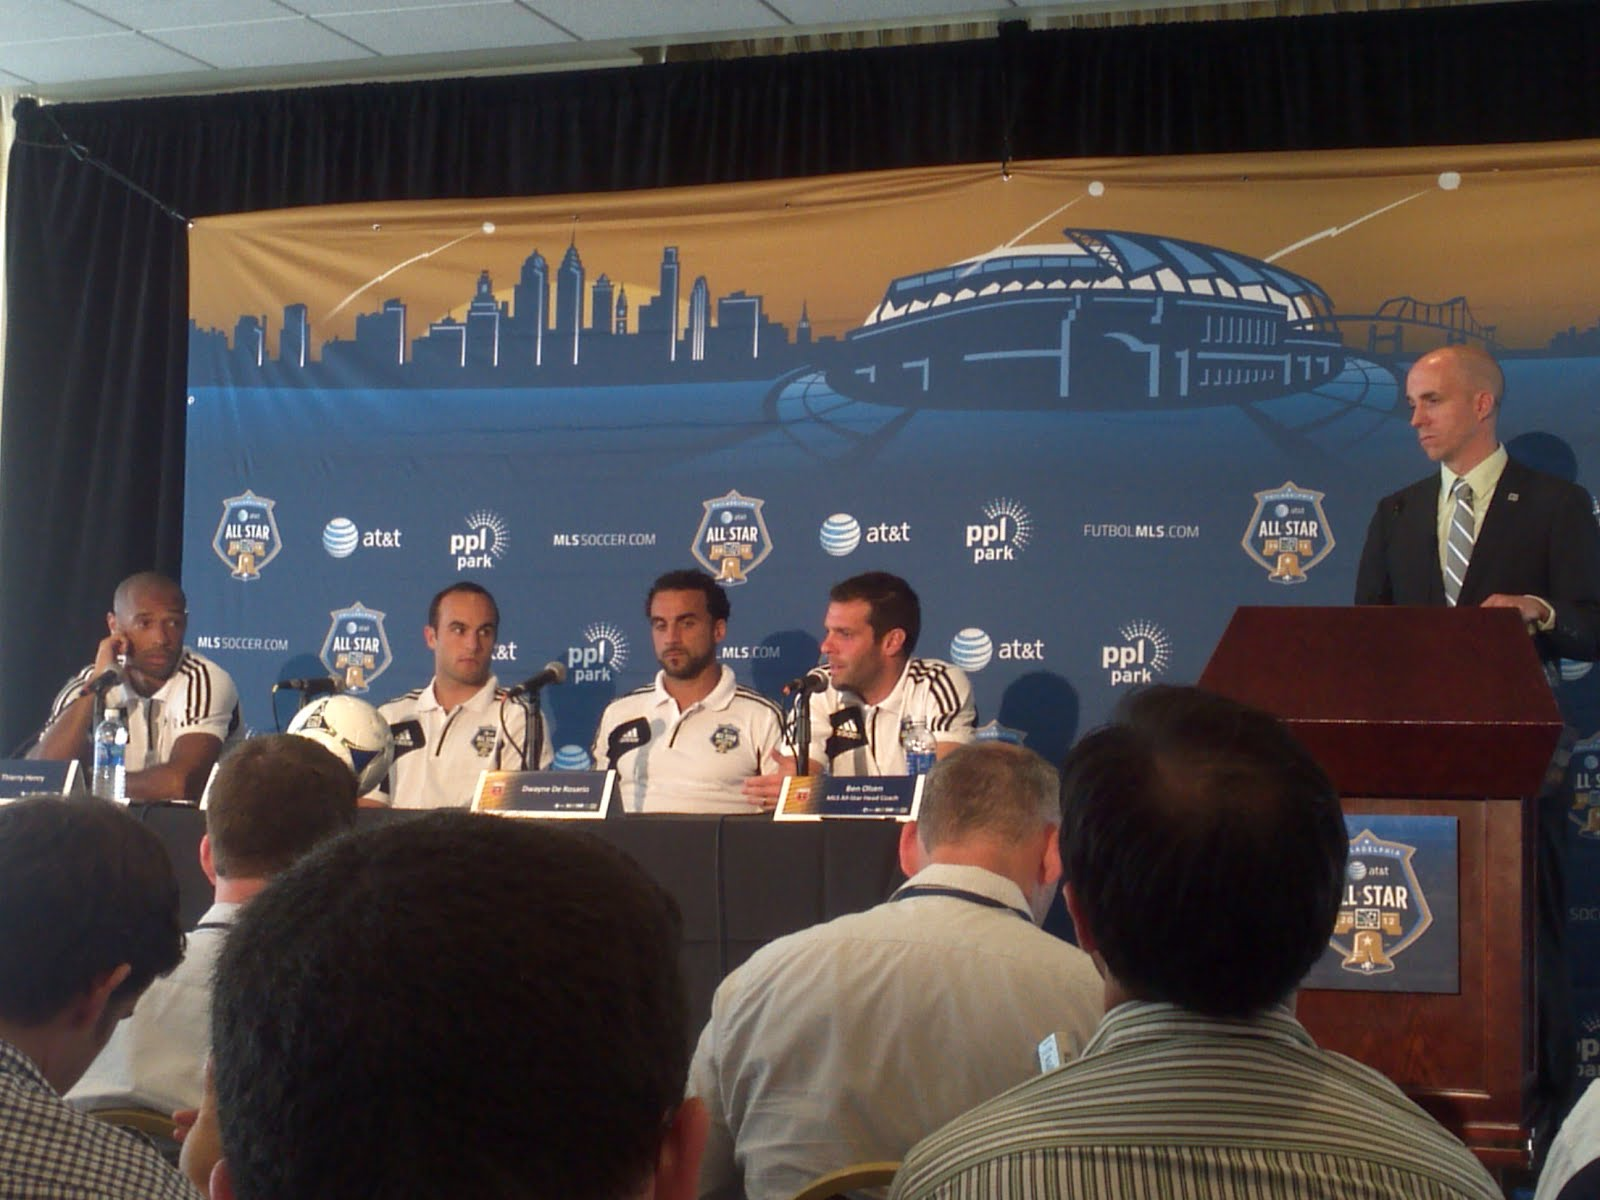 Photos: MLS All Star Game Press Conference - lgbt.soccer